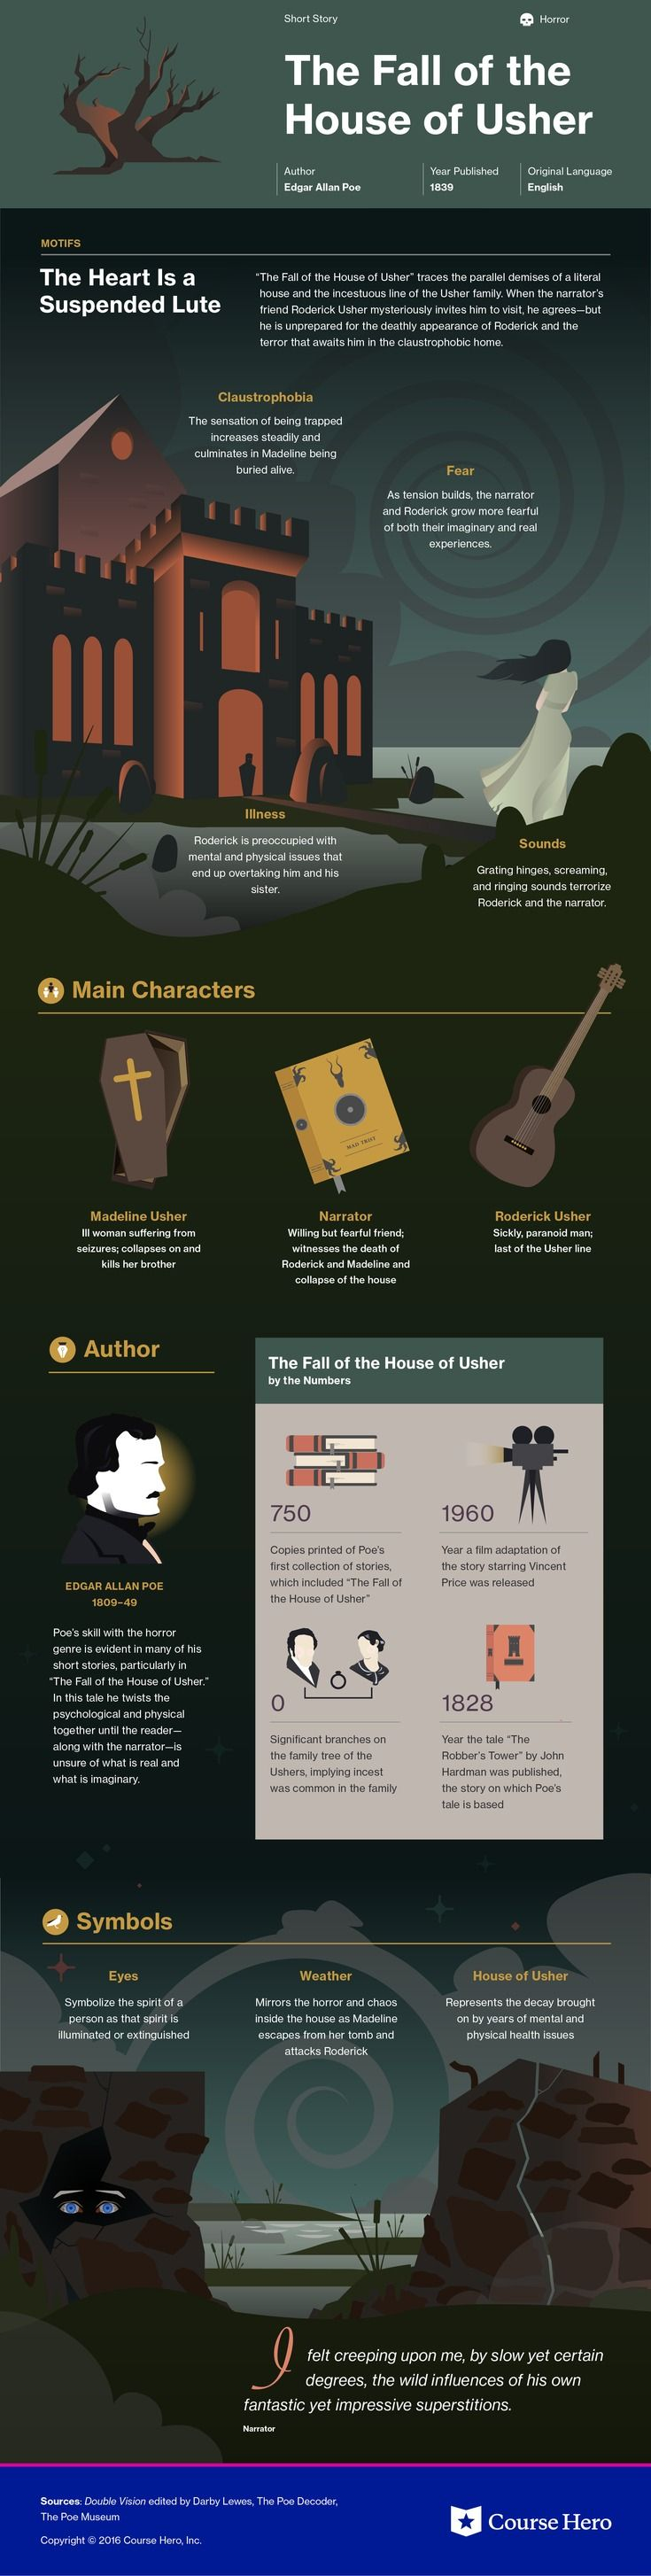 The Fall of the House of Usher Infographic | Course Hero